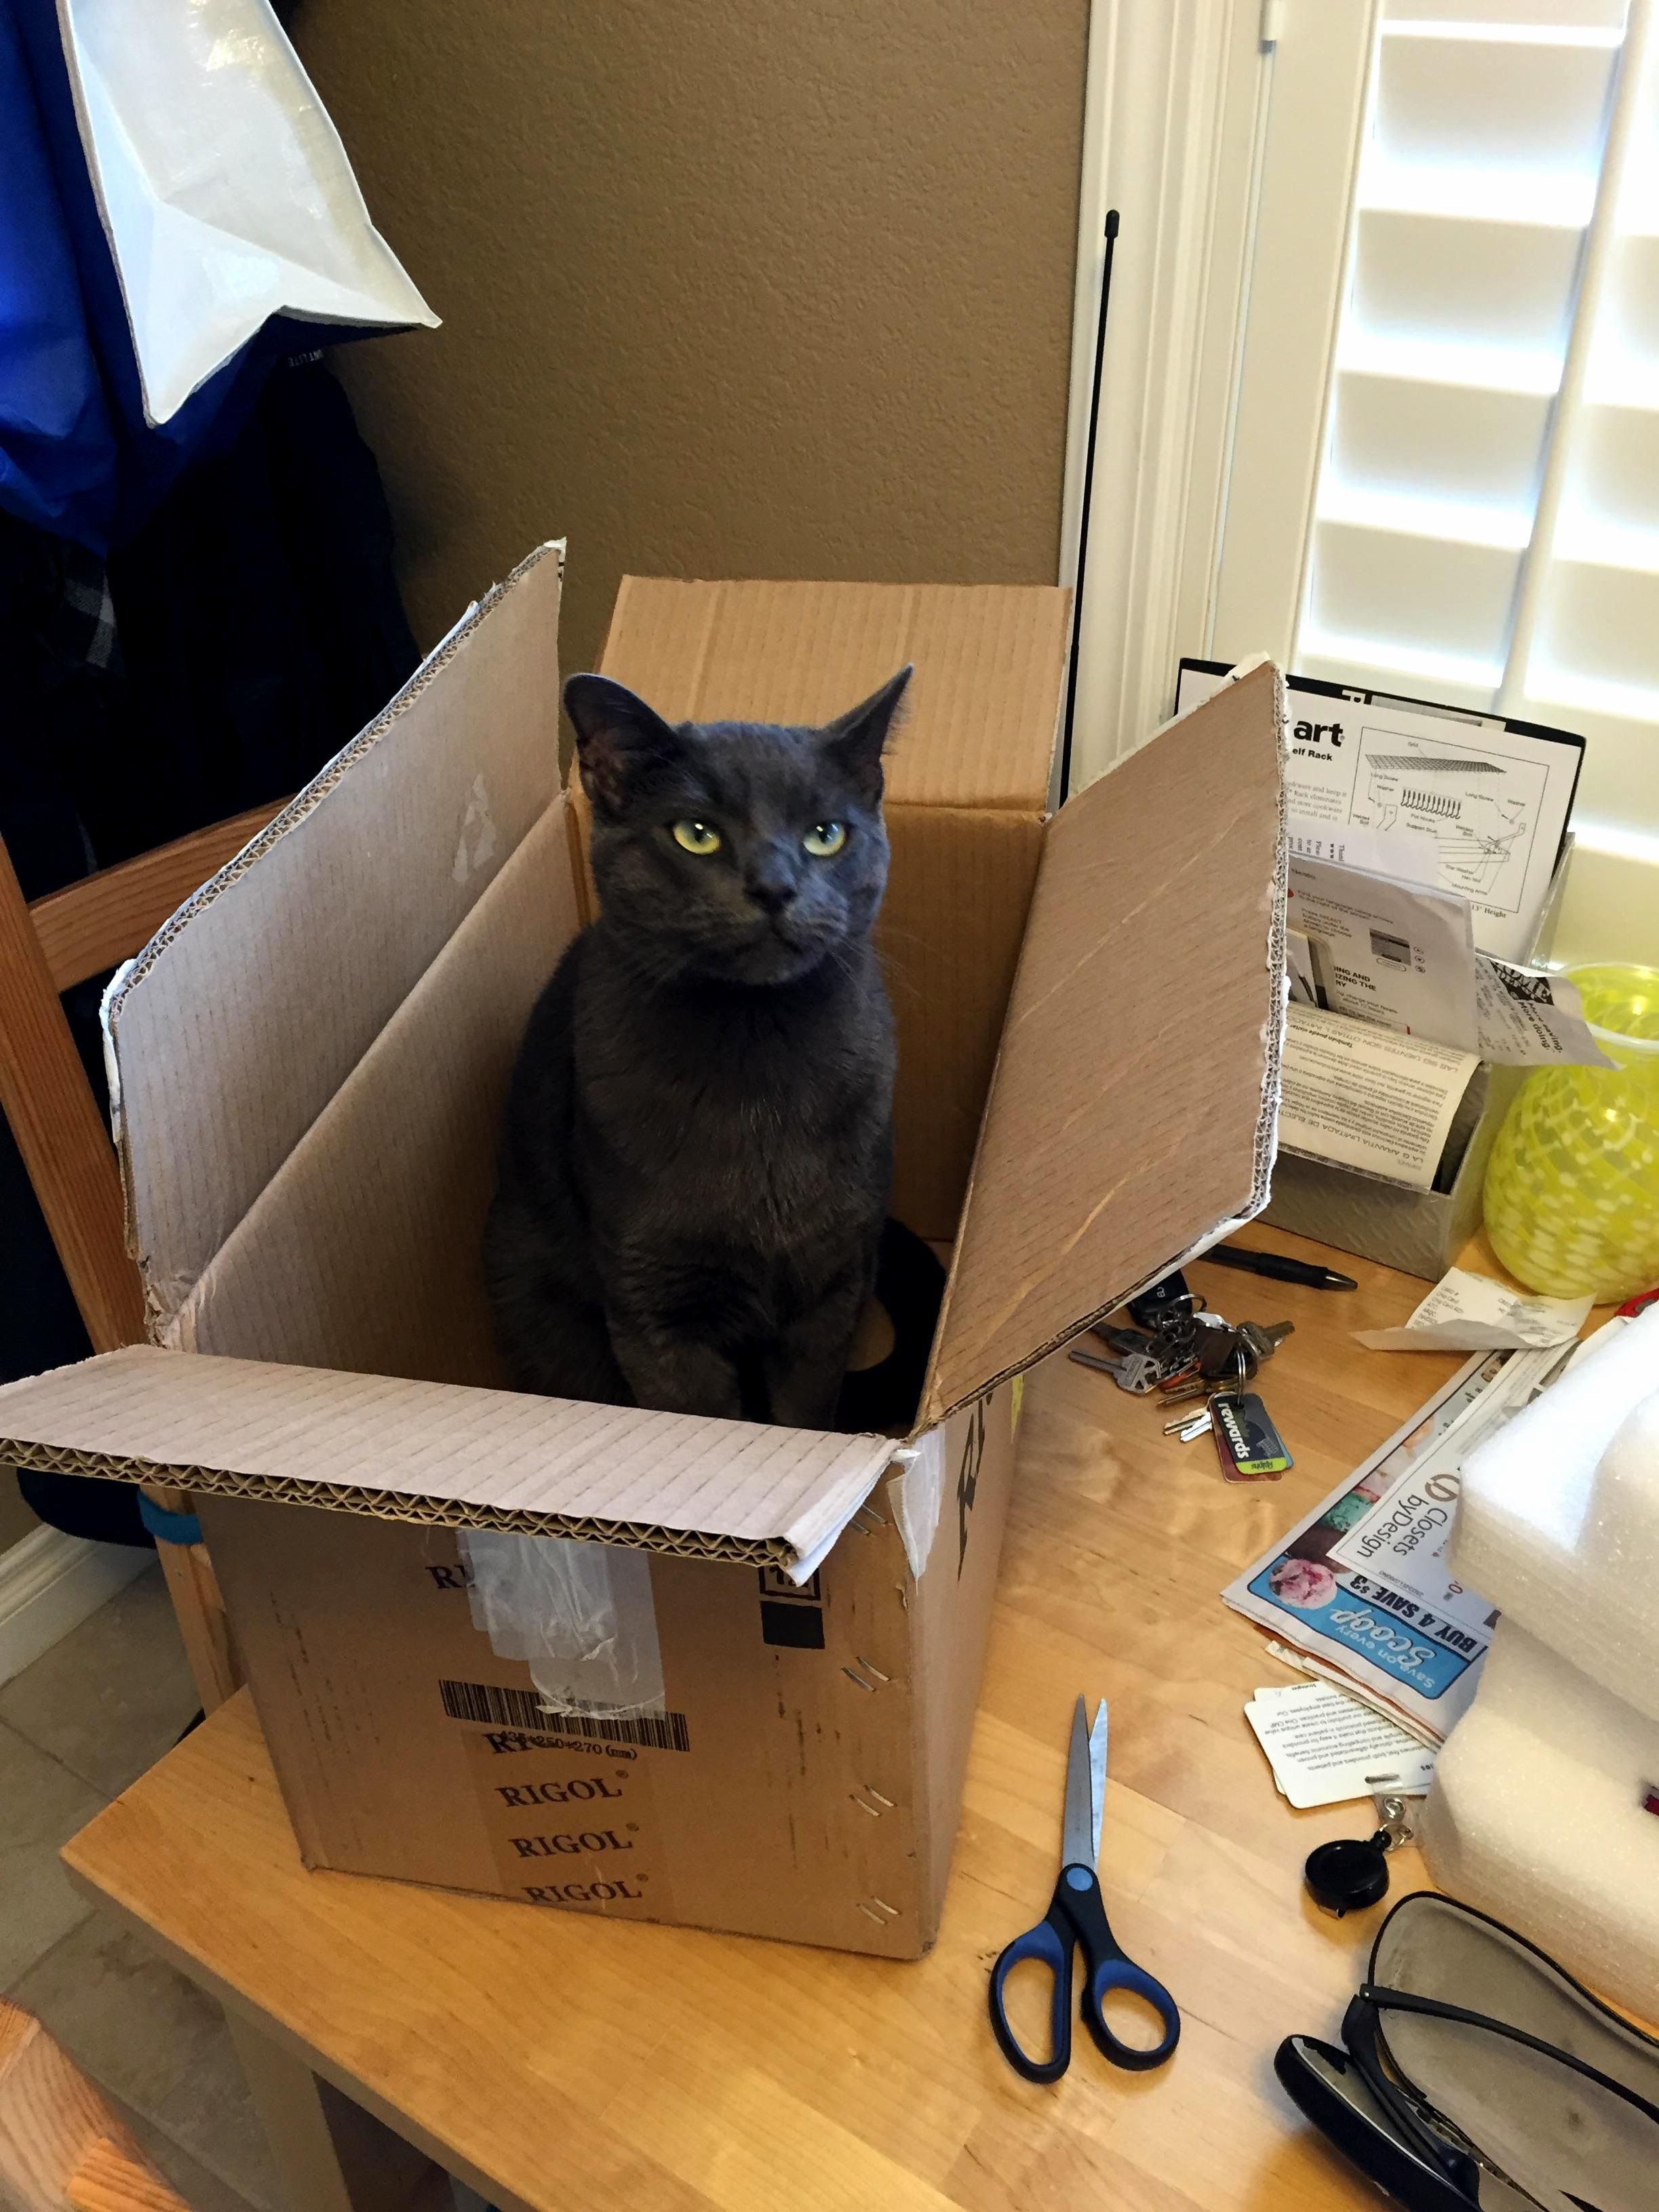 He didnt even wait for me to put the box on the floor first.